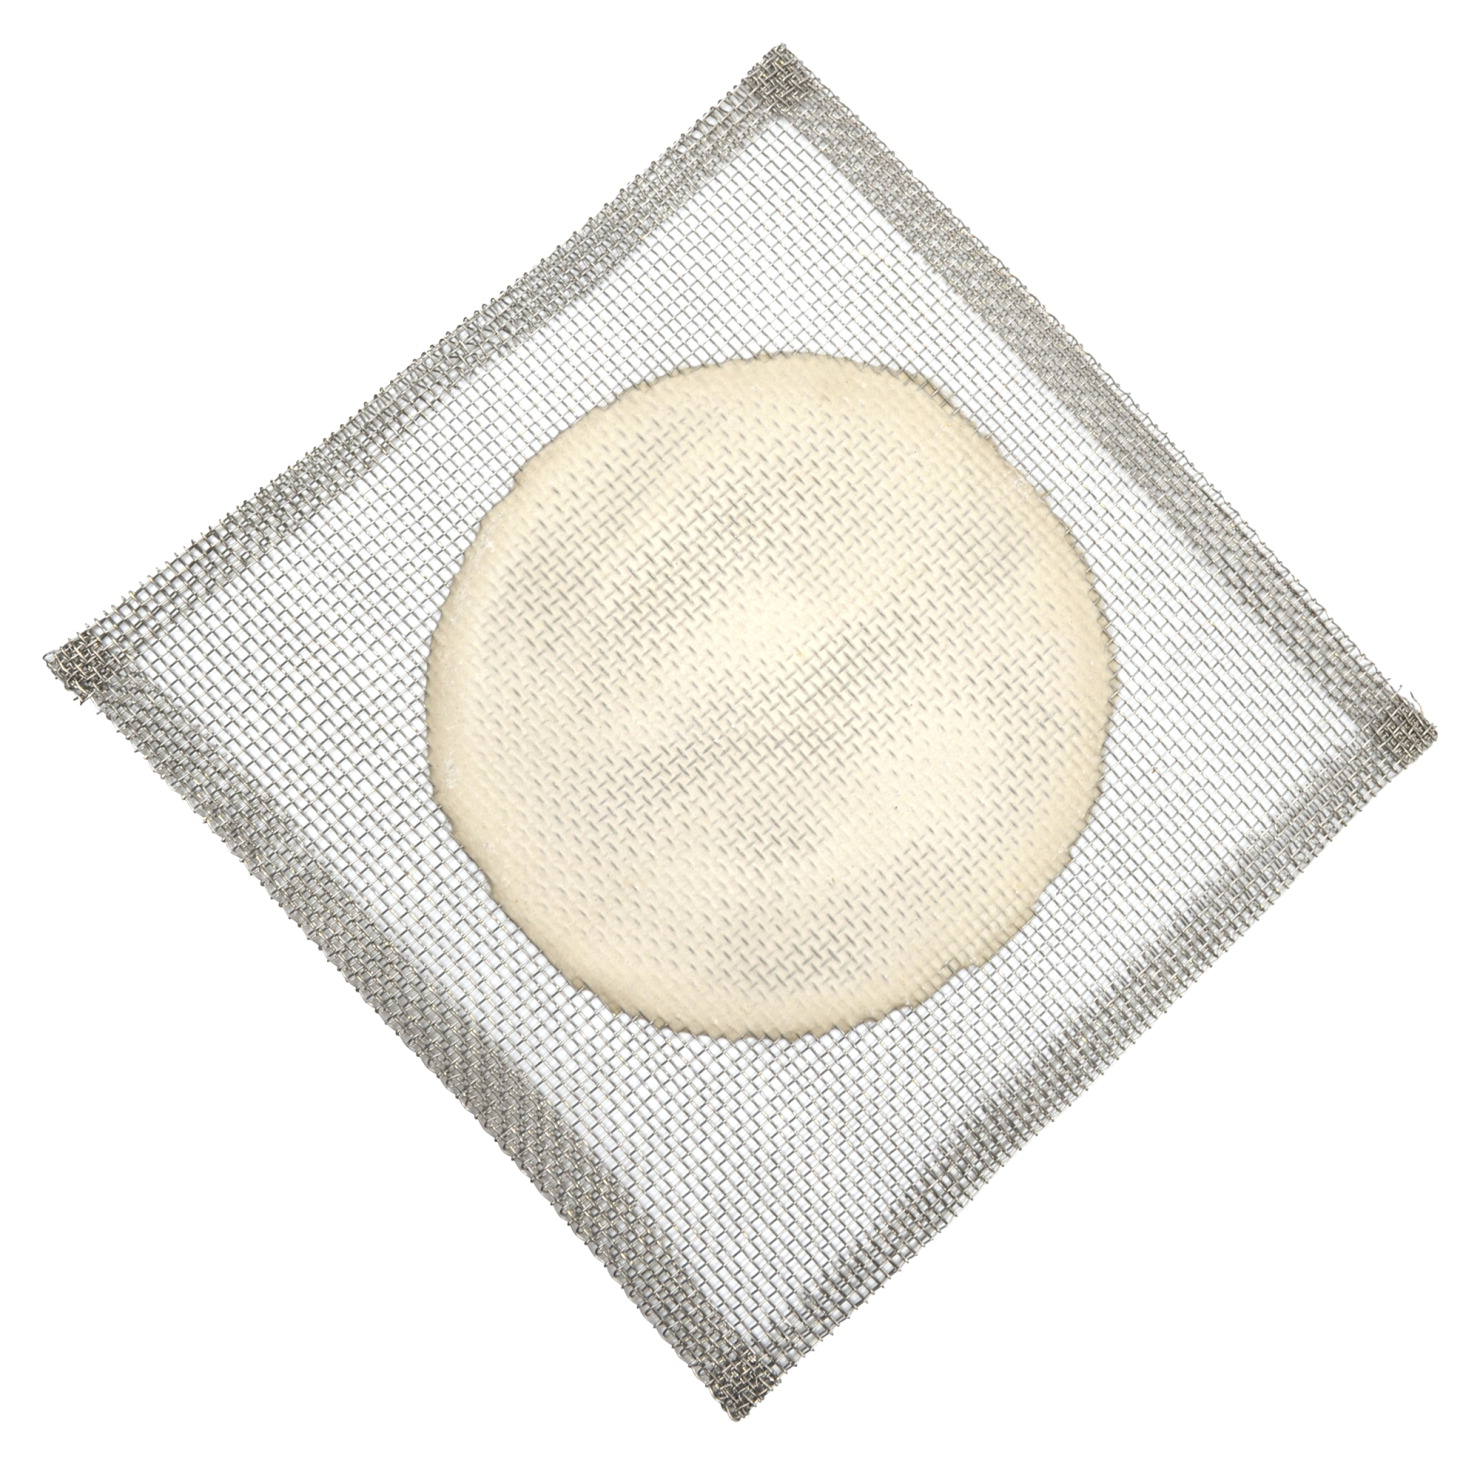 Eisco Labs Wire Gauze, Steel with Ceramic Center, 6 x 6 Inches, Pack of 10